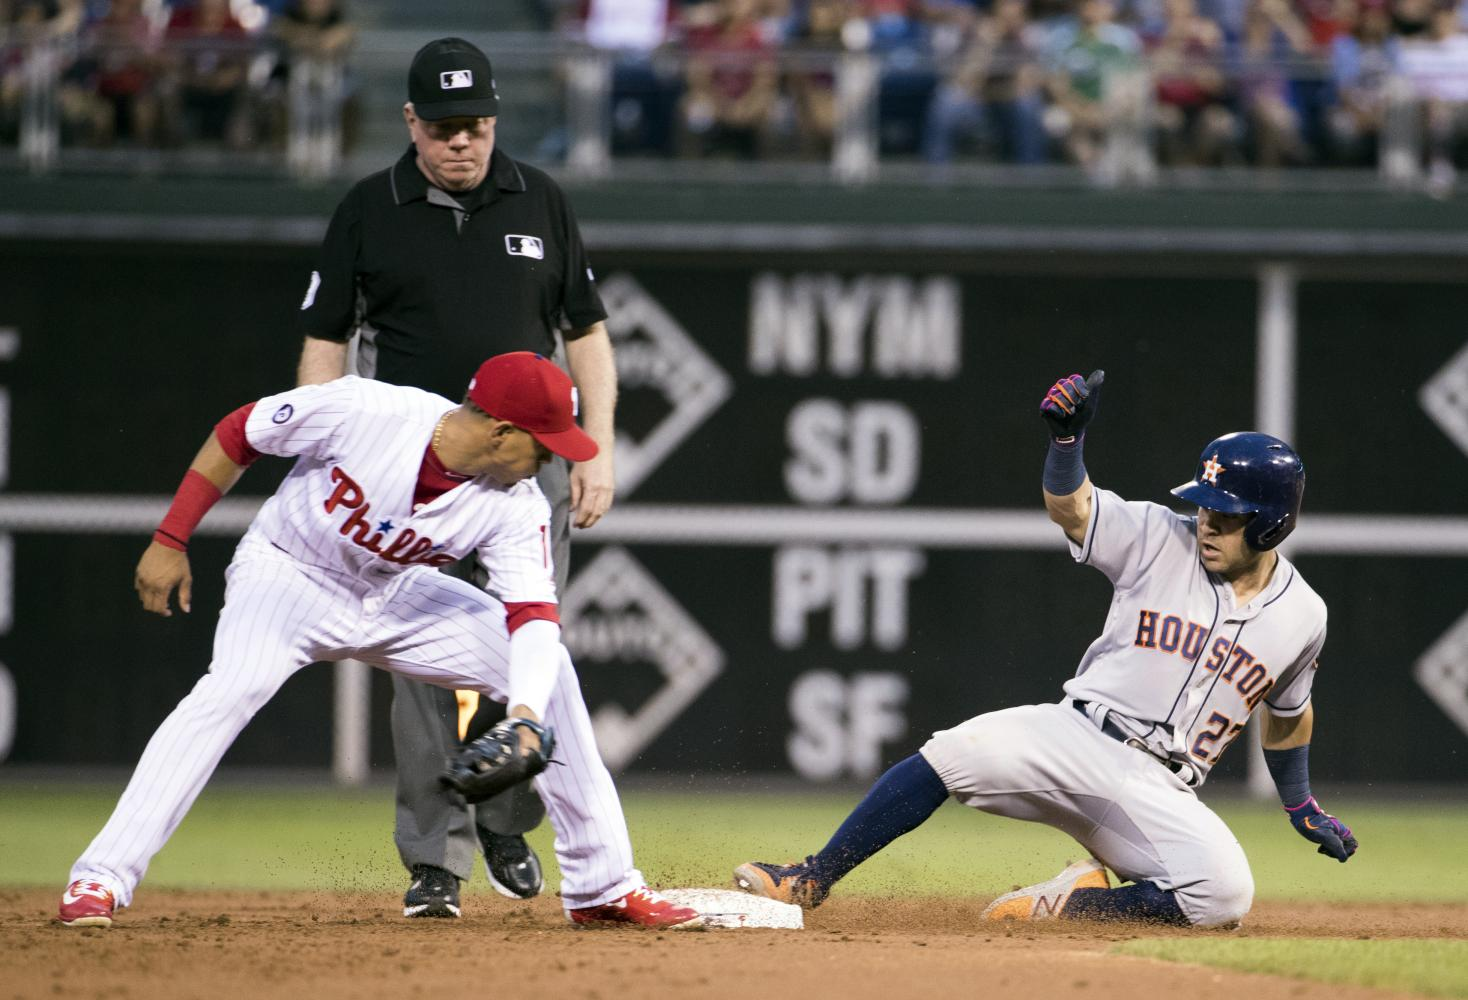 Jose Altuve slides into second bases on one of his two doubles of the night.(AP Photo/Chris Szagola)